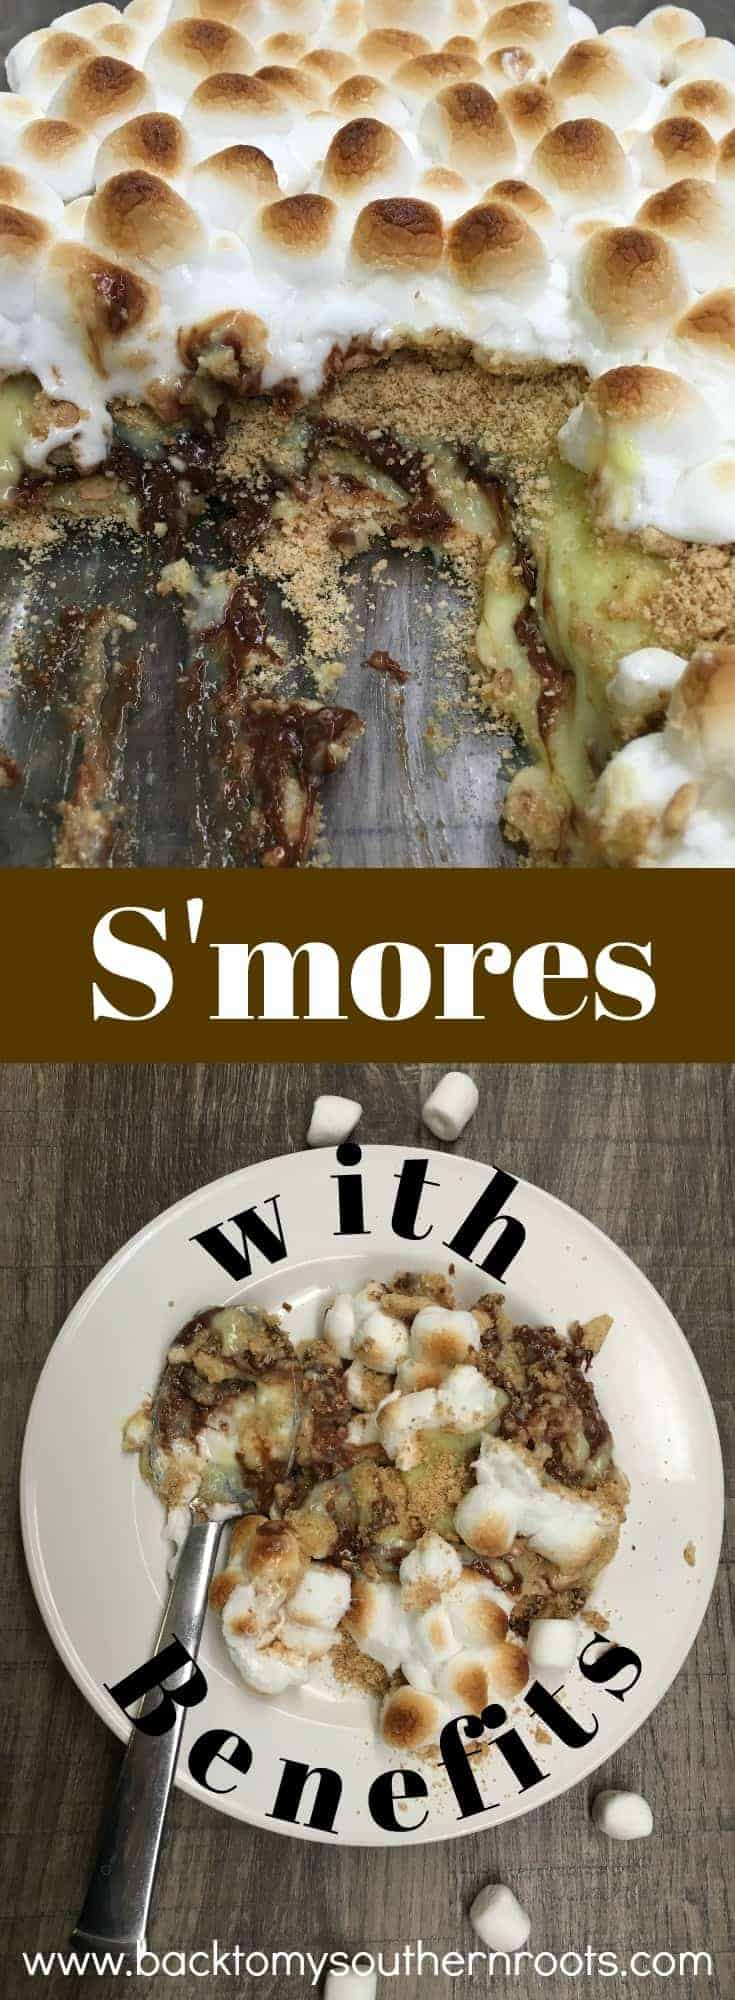 S'mores chocolate pudding dessert is like s'mores with benefits. Chocolate bars, graham crackers, marshmallows, and vanilla pudding make up this rich and delicious dessert you won't be able to put down.